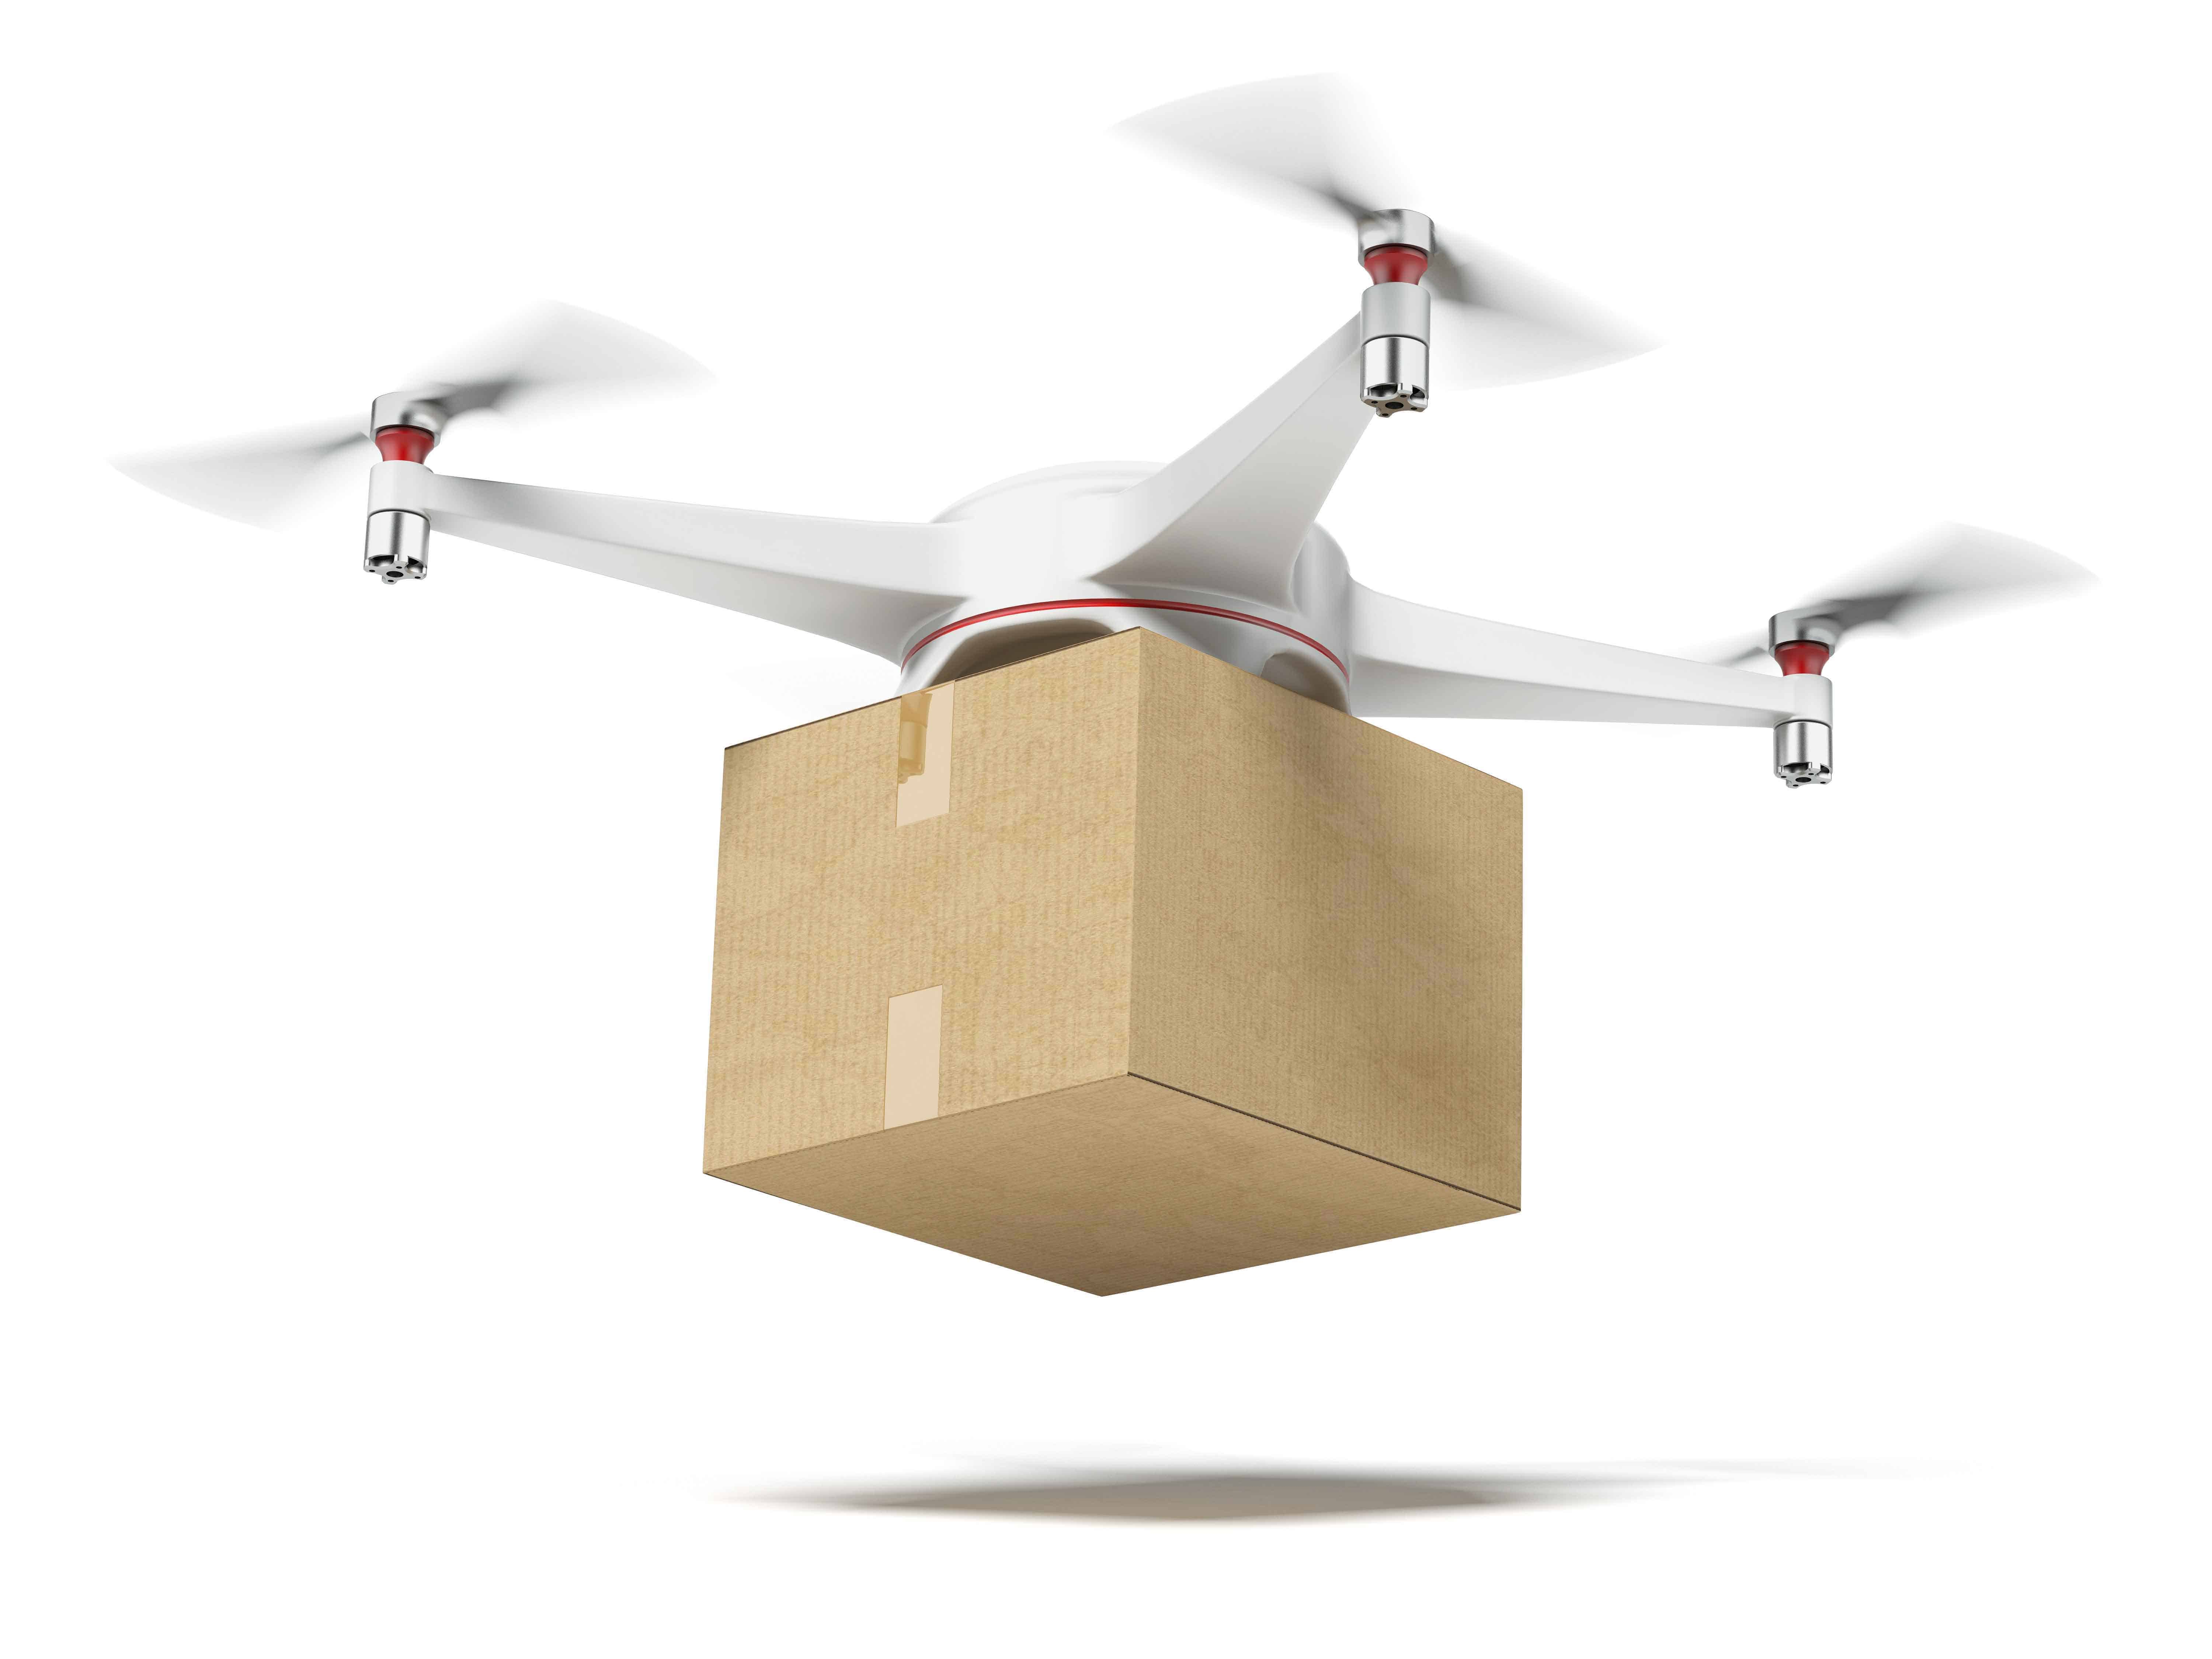 Drone Delivery By The Numbers